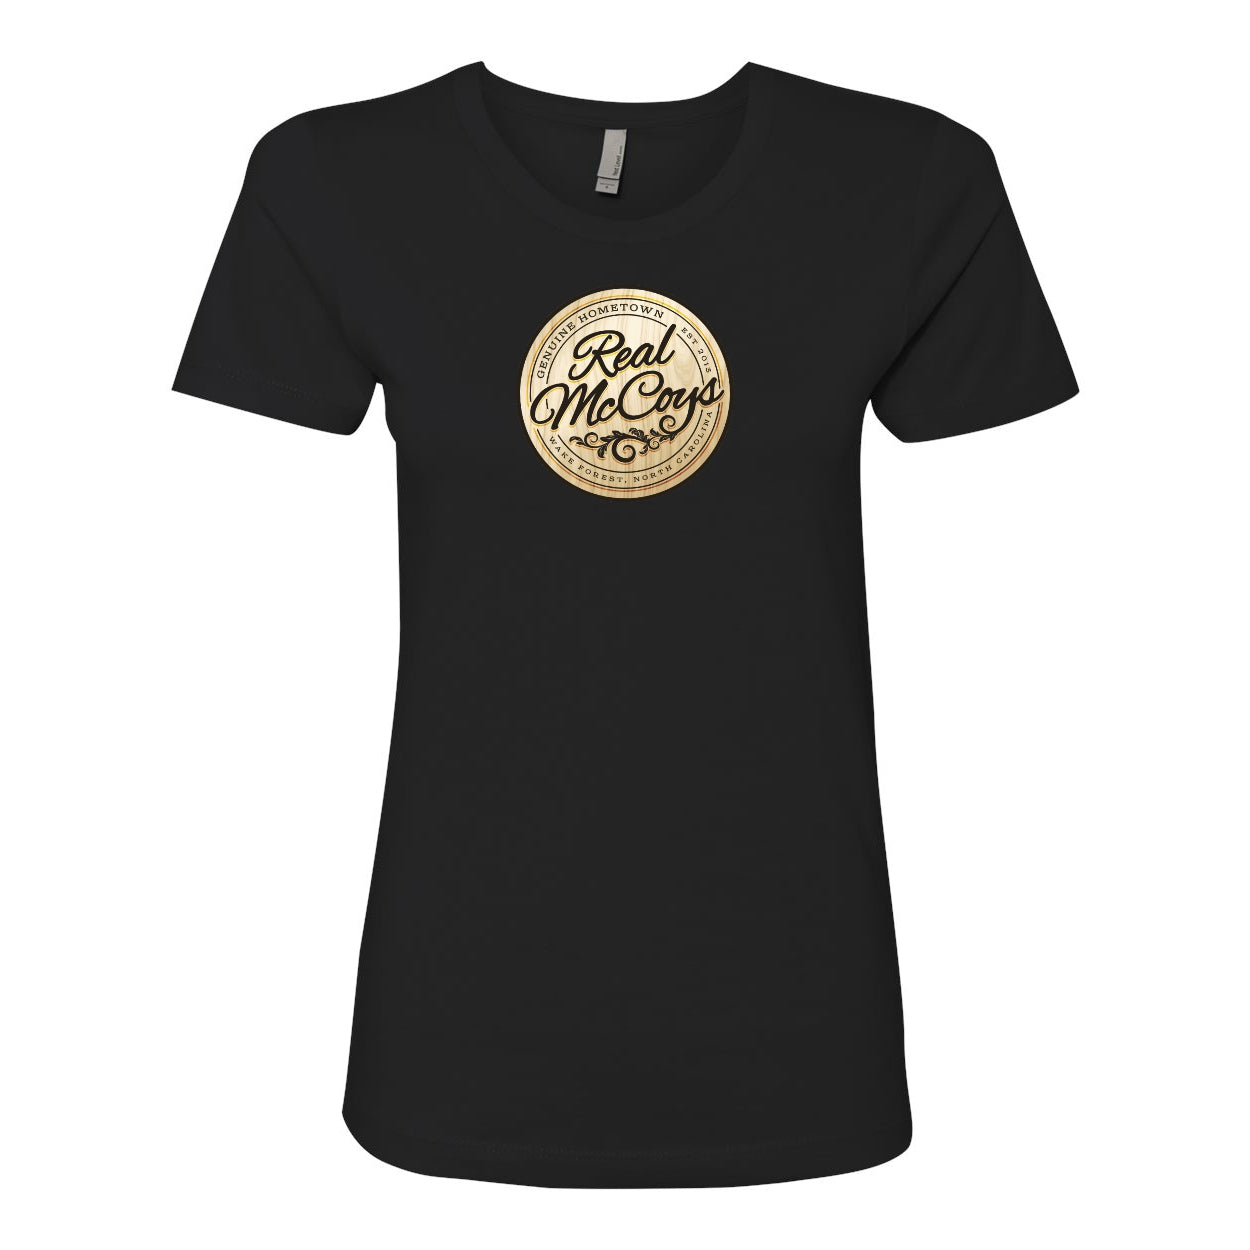 Real McCoy's Women's Logo Tee